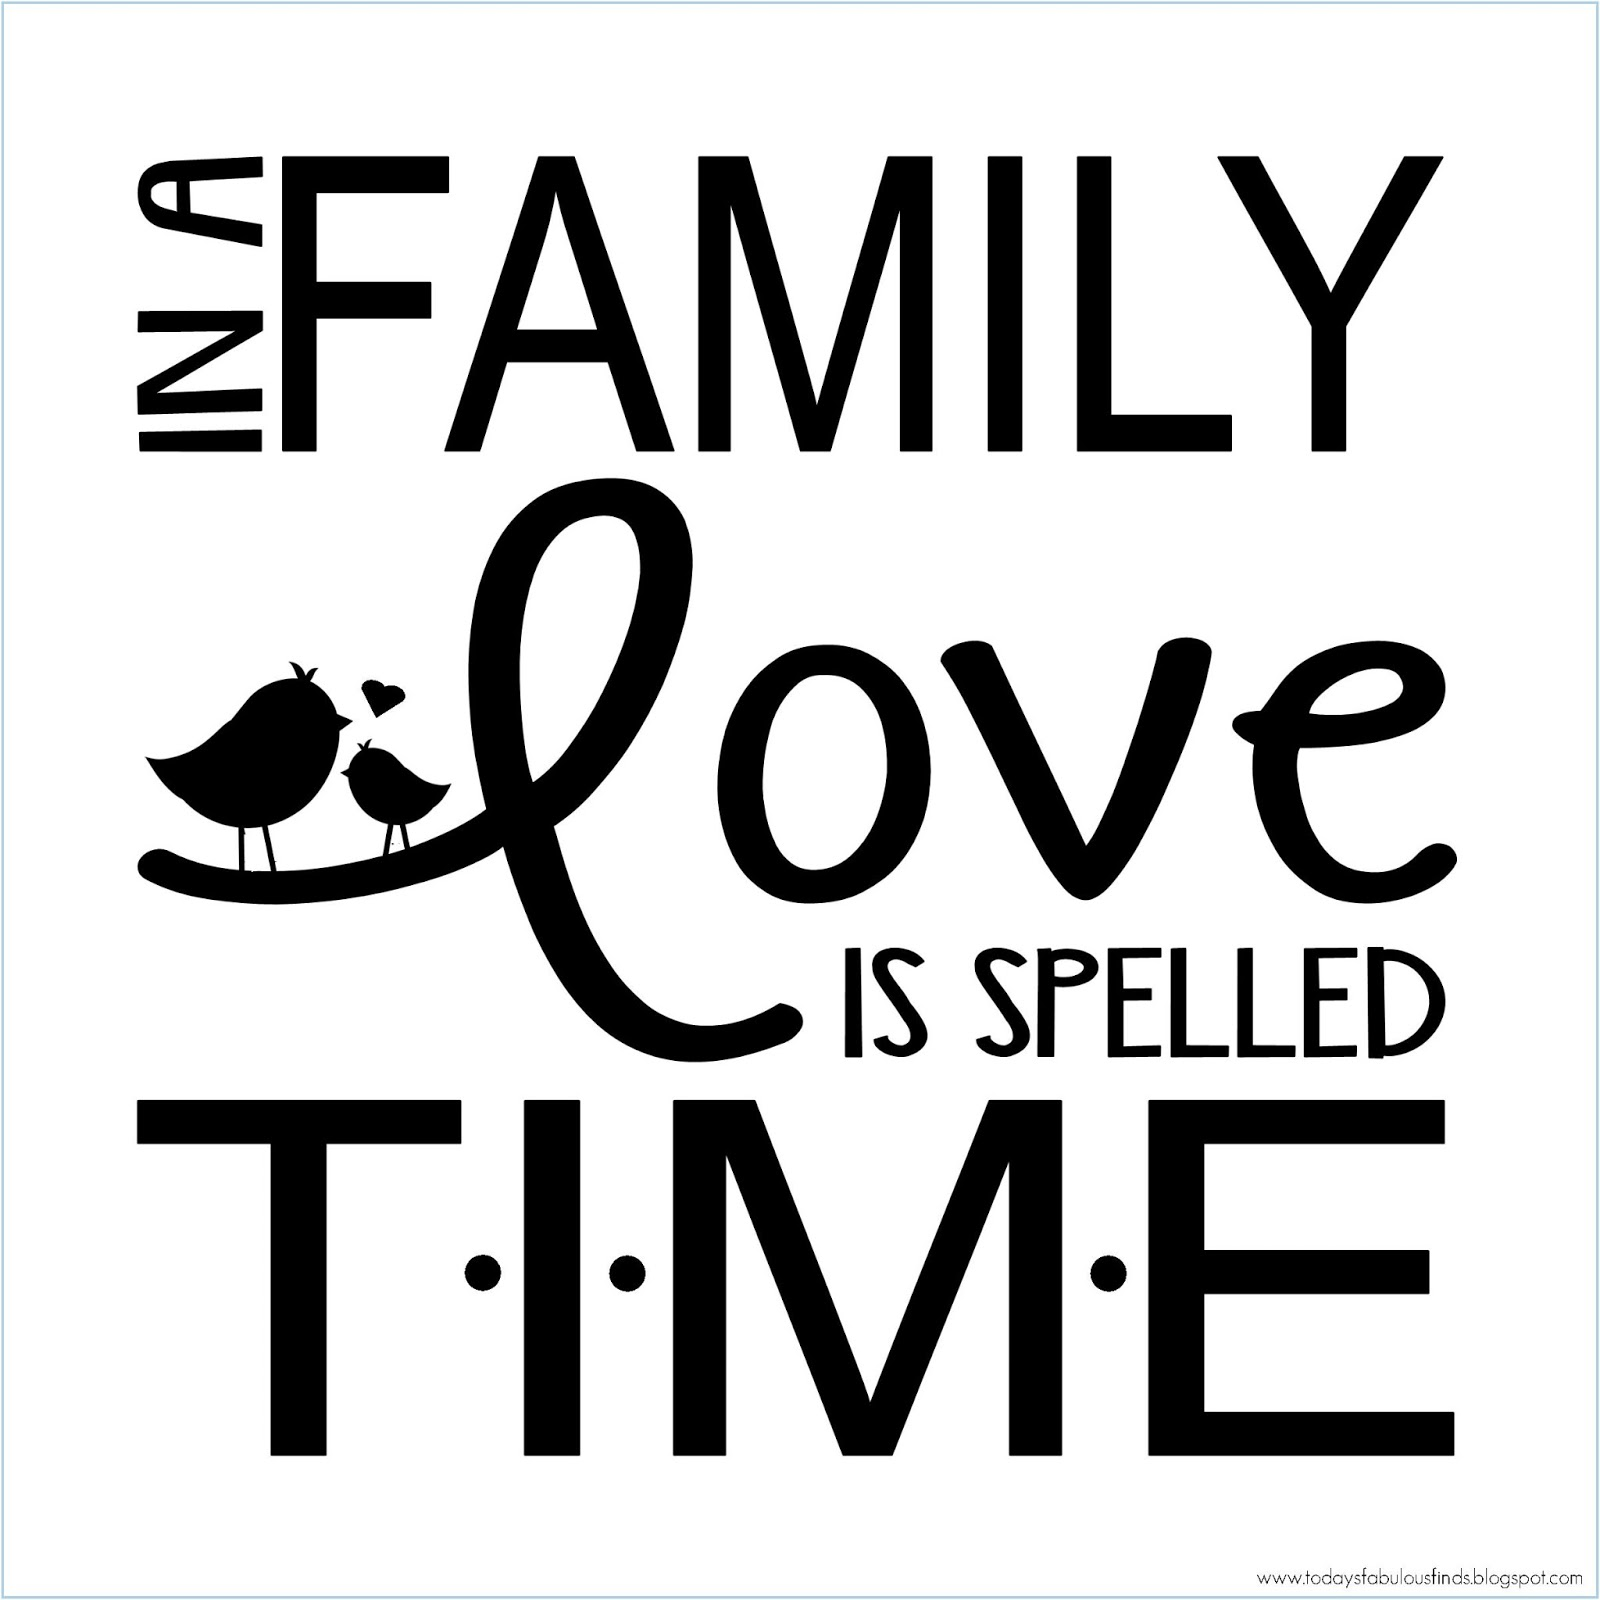 Today S Fabulous Finds Free Prints In A Family Love Is